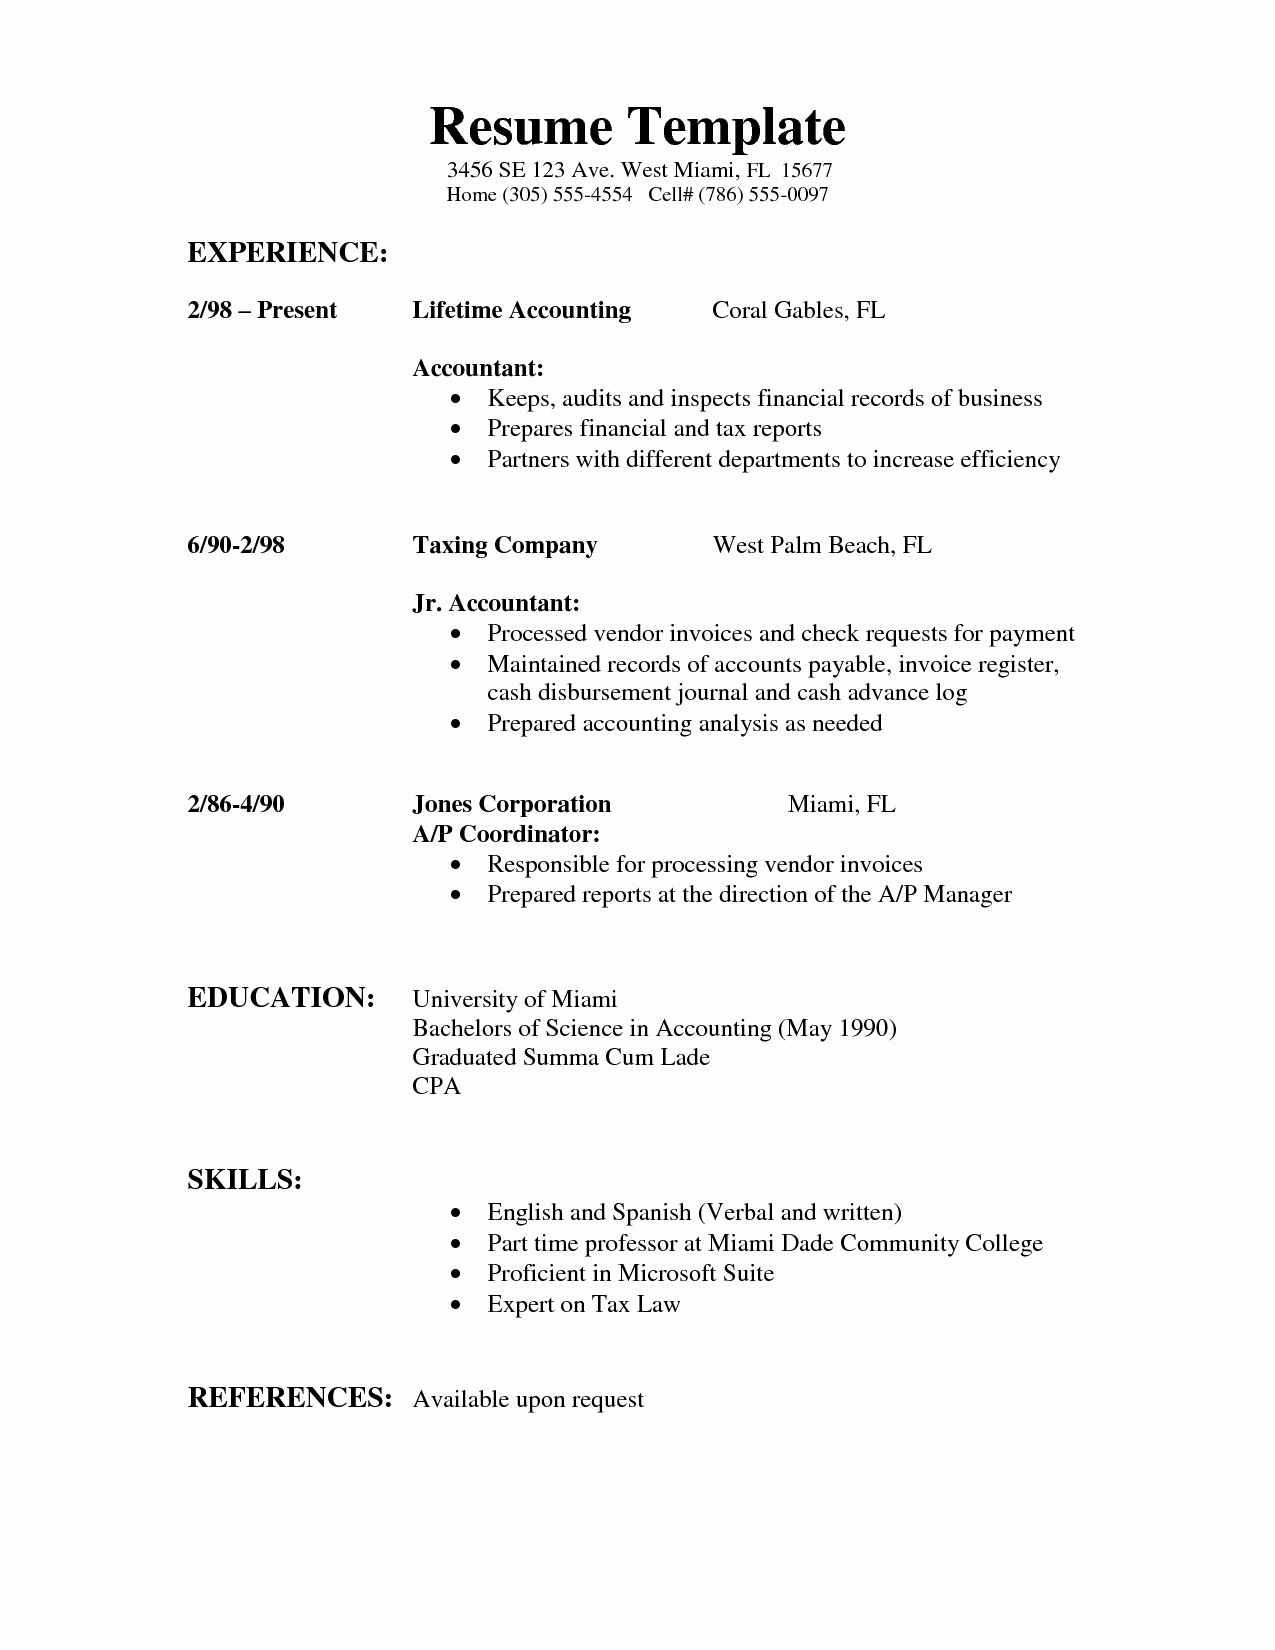 Simple Resume format Pdf Inspirational Resumes Resume Examples Projects to Try